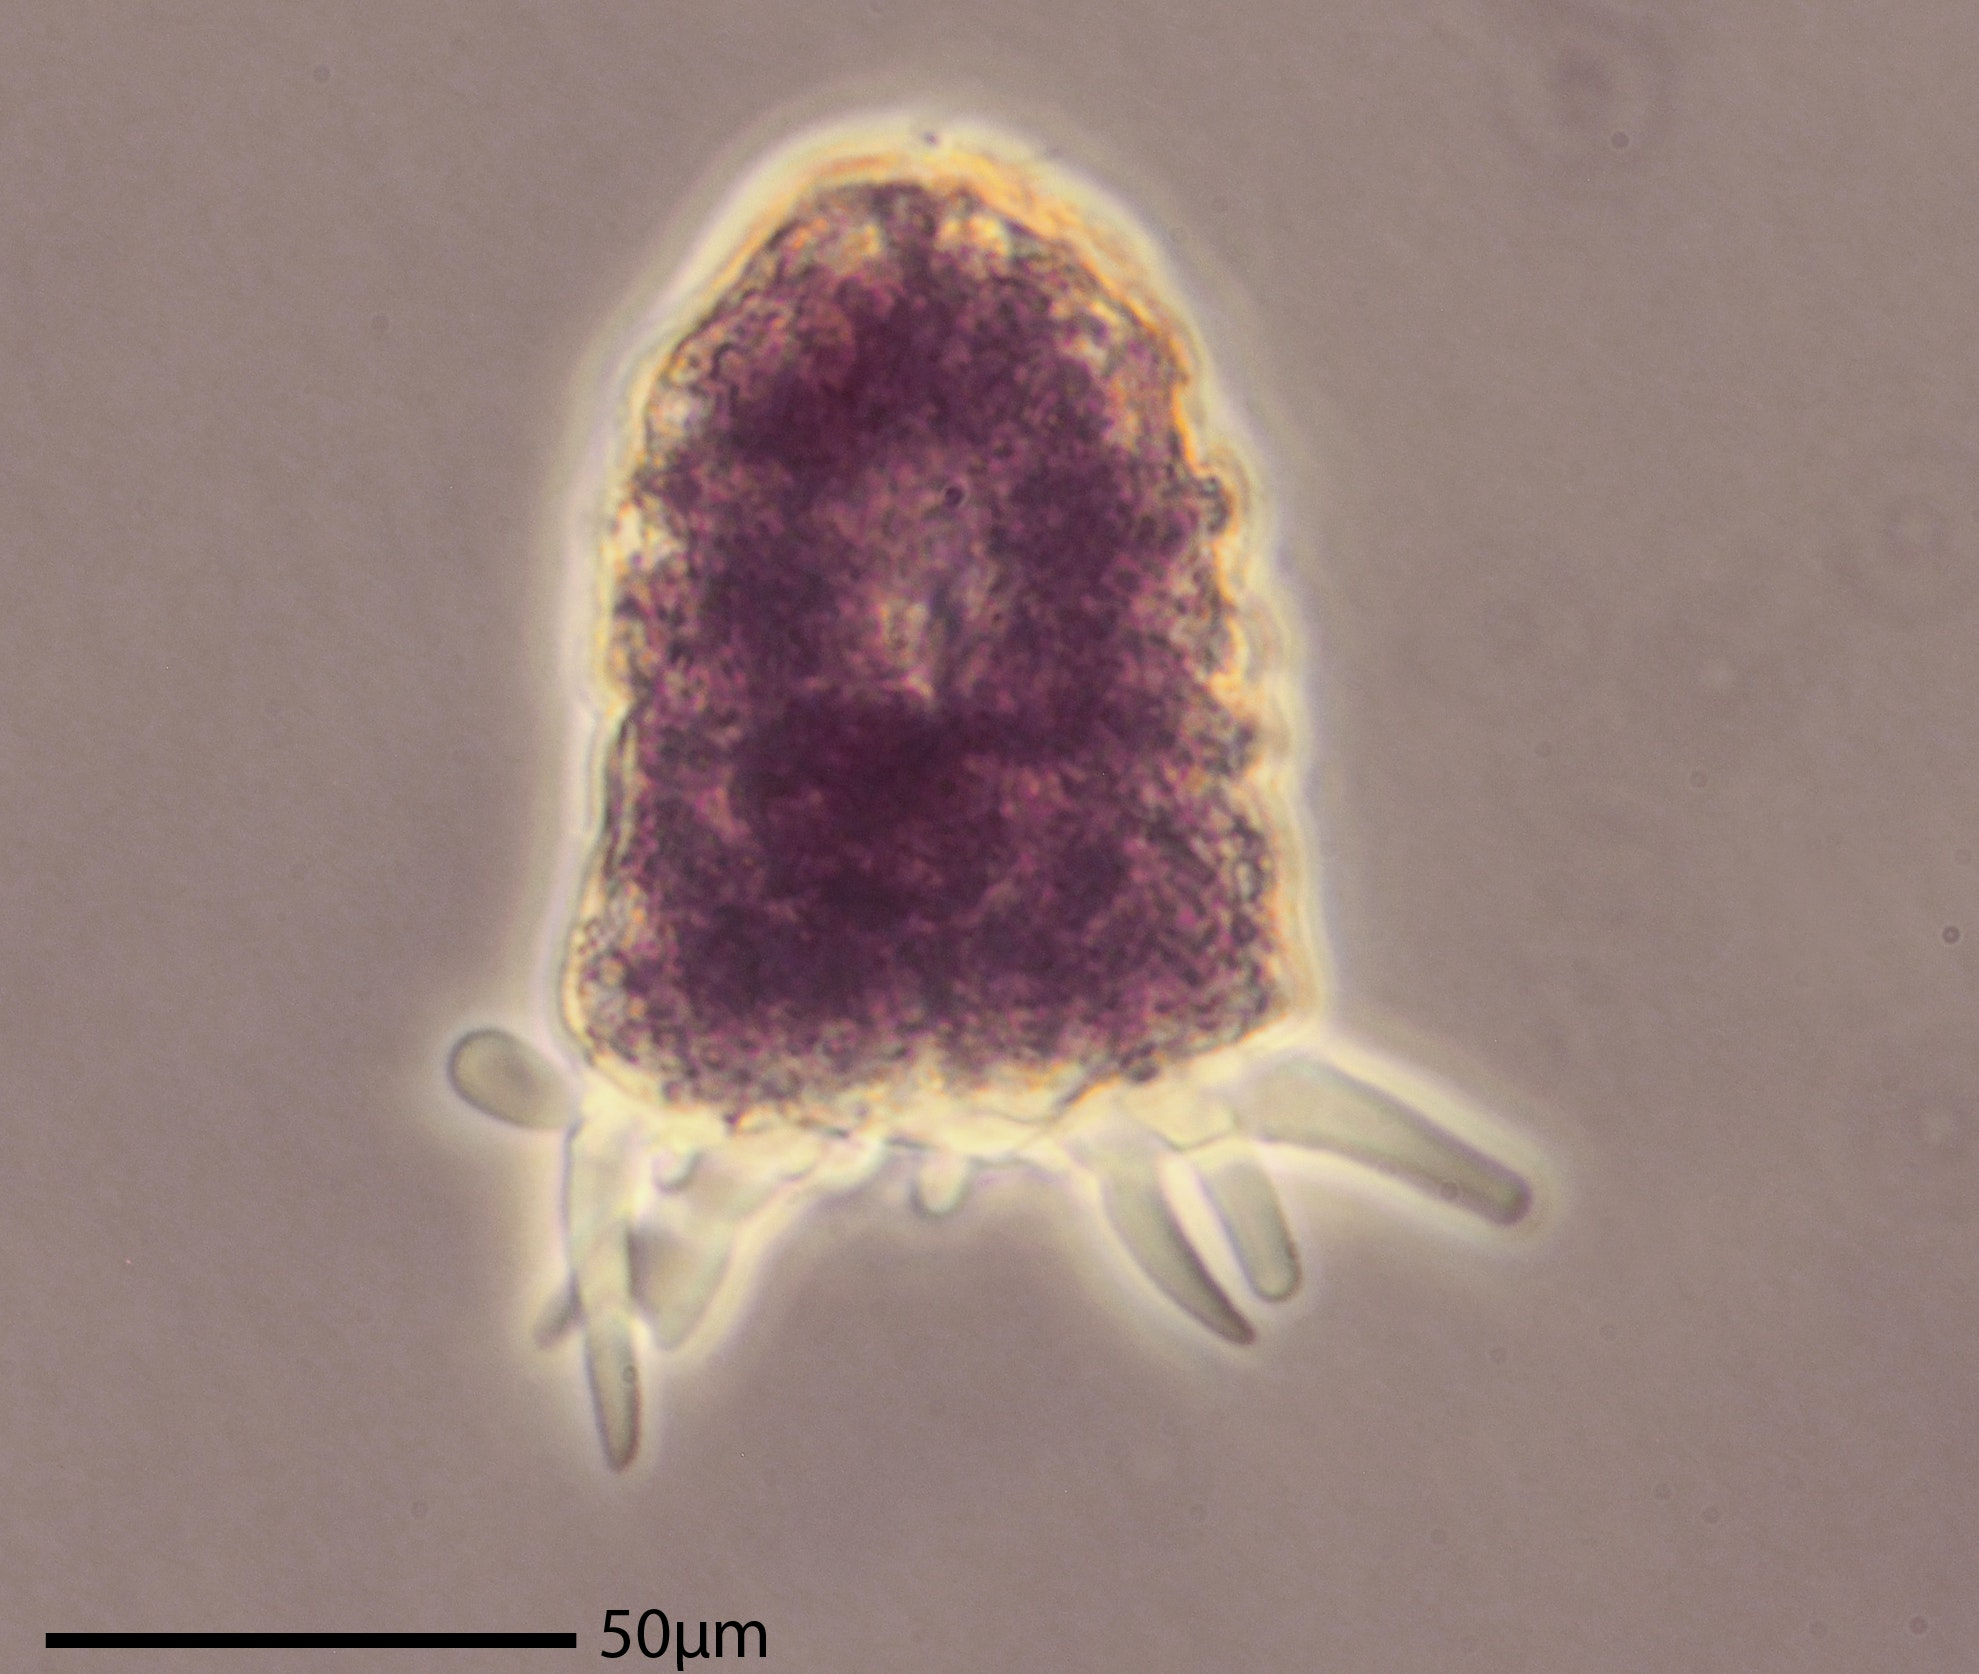 Amphizonella – identified in the authors' sidewalk sample – has a soft protective layer | Matthew W. Brown, CC BY-ND